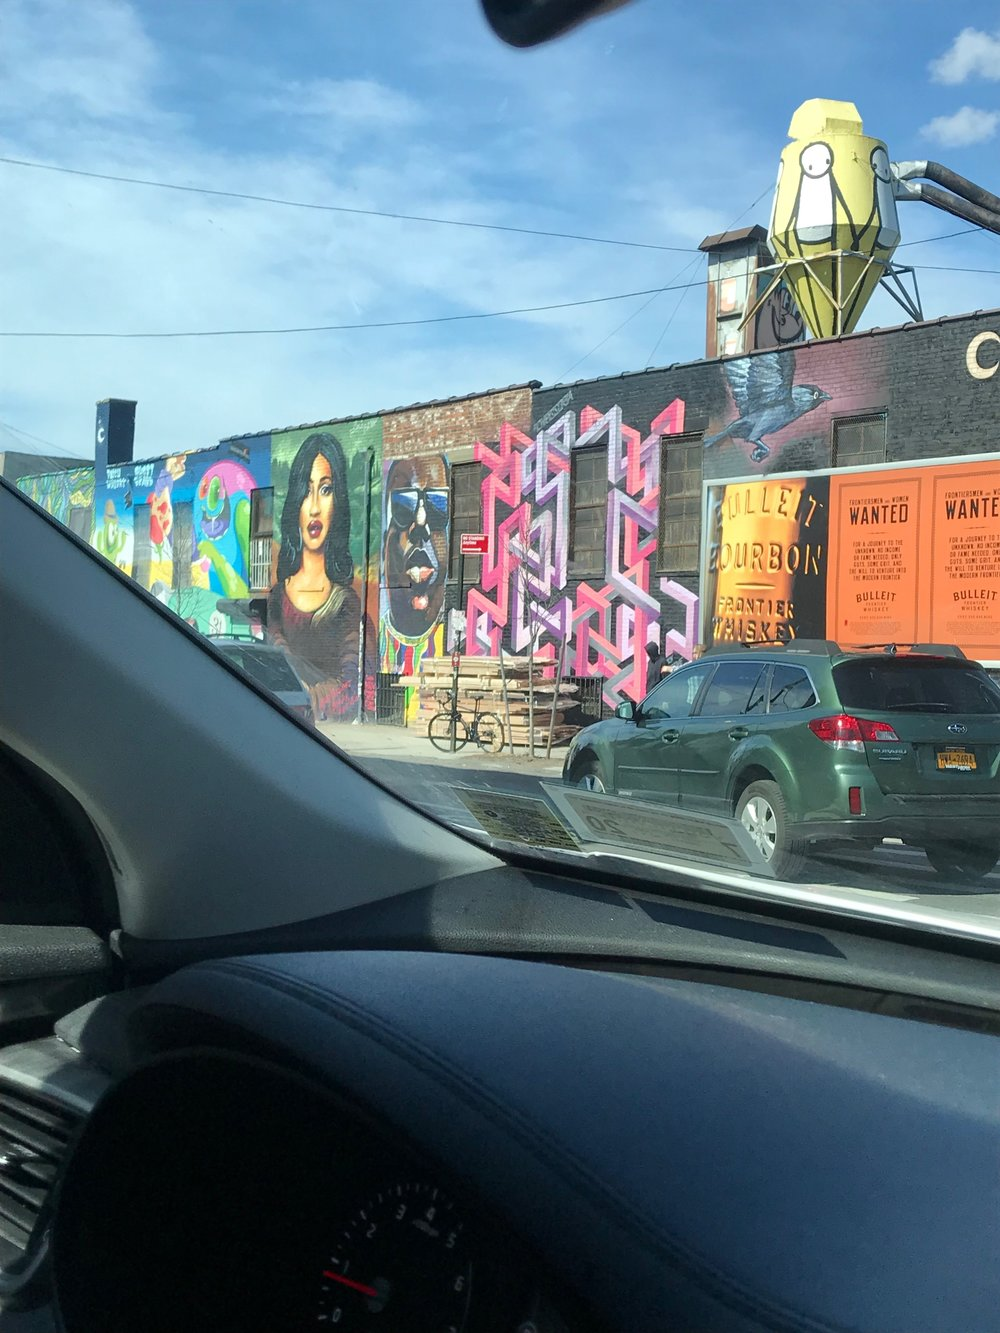 I get to see so many ill things every day driving around NYC/BK/QNZ/BX/Long Island. Whatever this phase is it's vibrant.